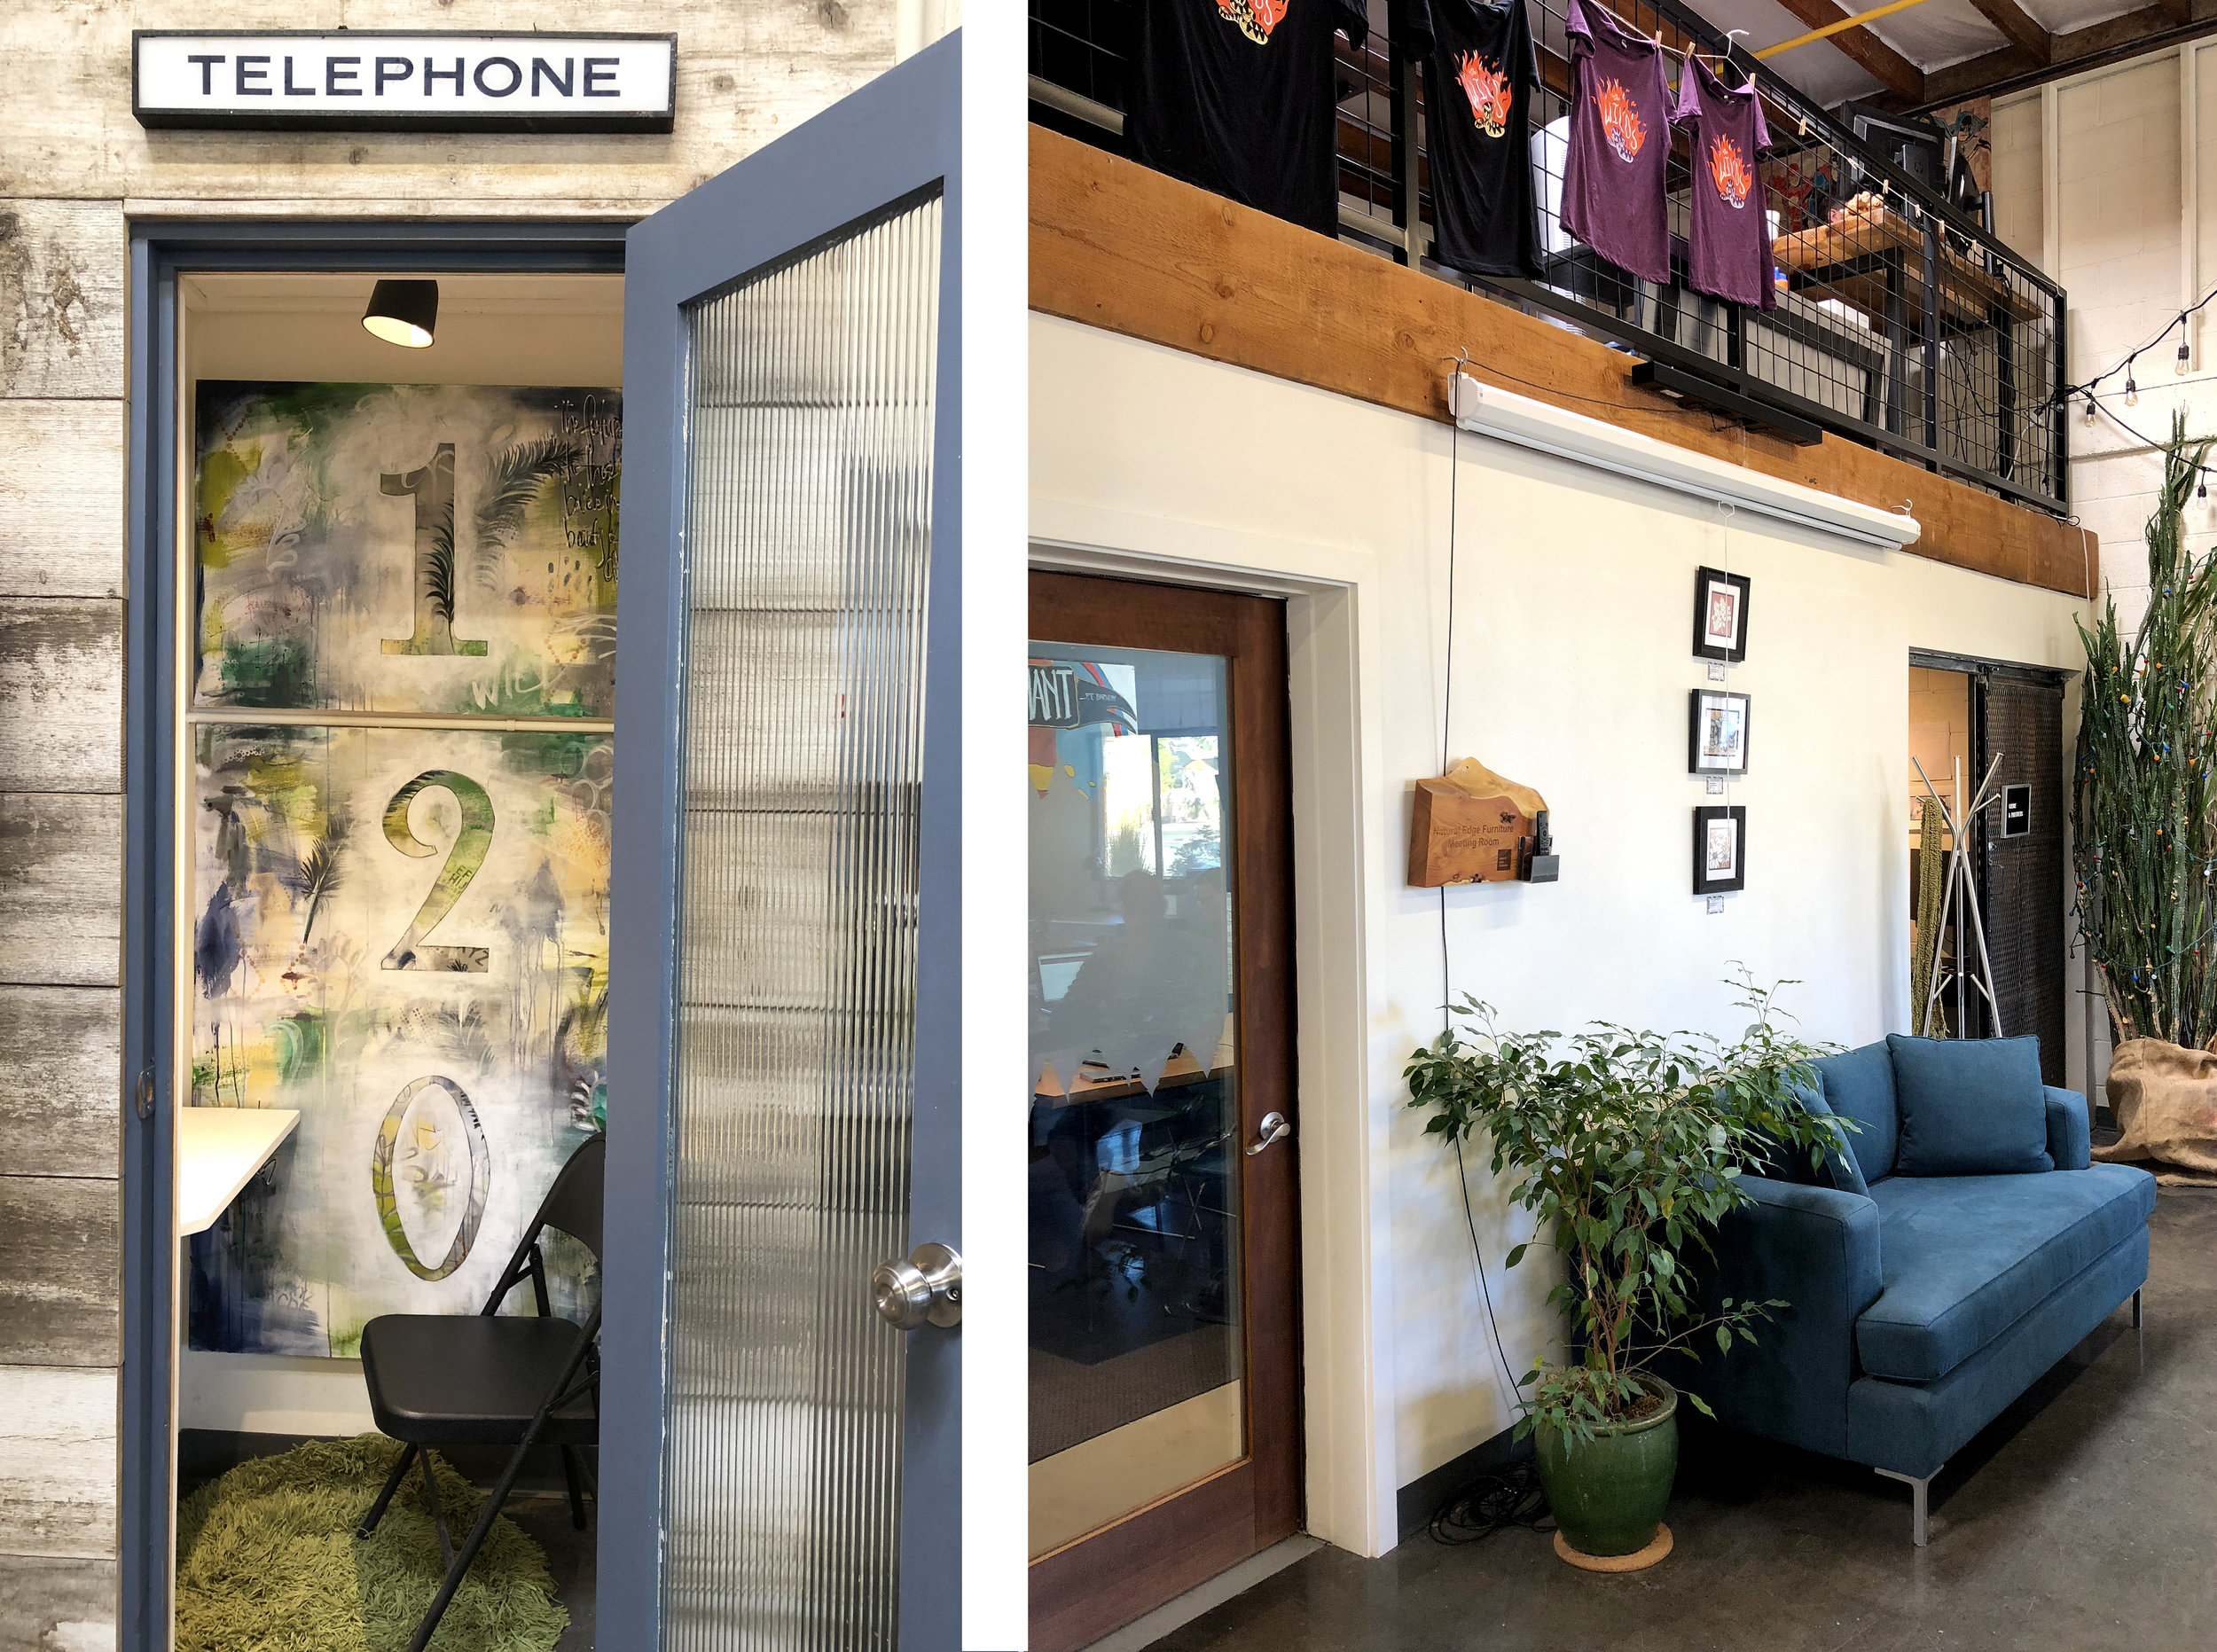 Our phone booth offers auditory privacy during phone calls, and the Meeting Room to the right has a lovely table by  Natural Edge Furniture , here in Bend, Oregon.